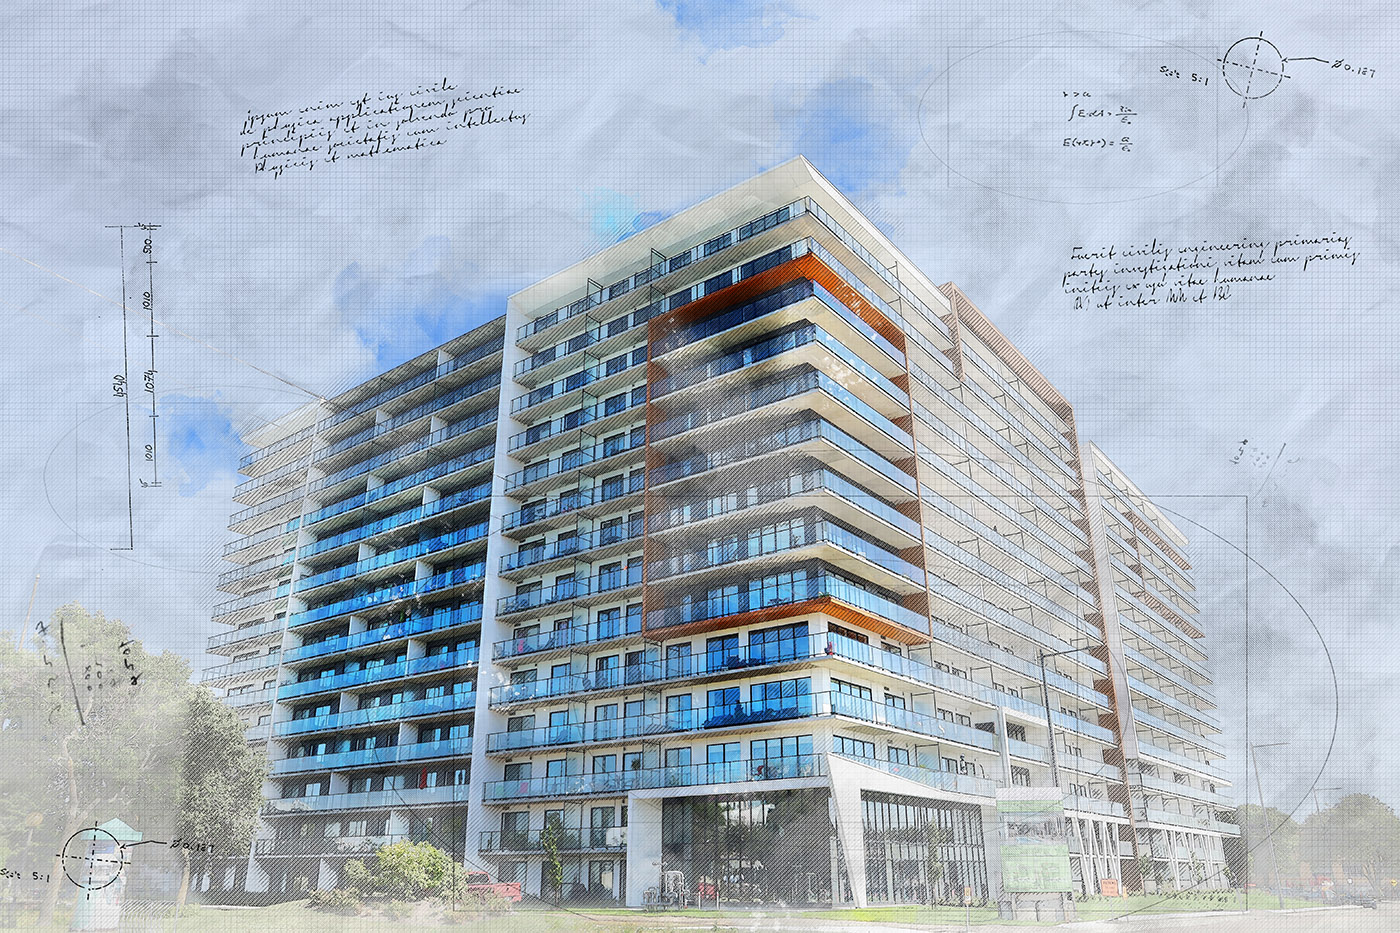 Large Condominium Building Sketch Image - Royalty-Free Stock Imagery